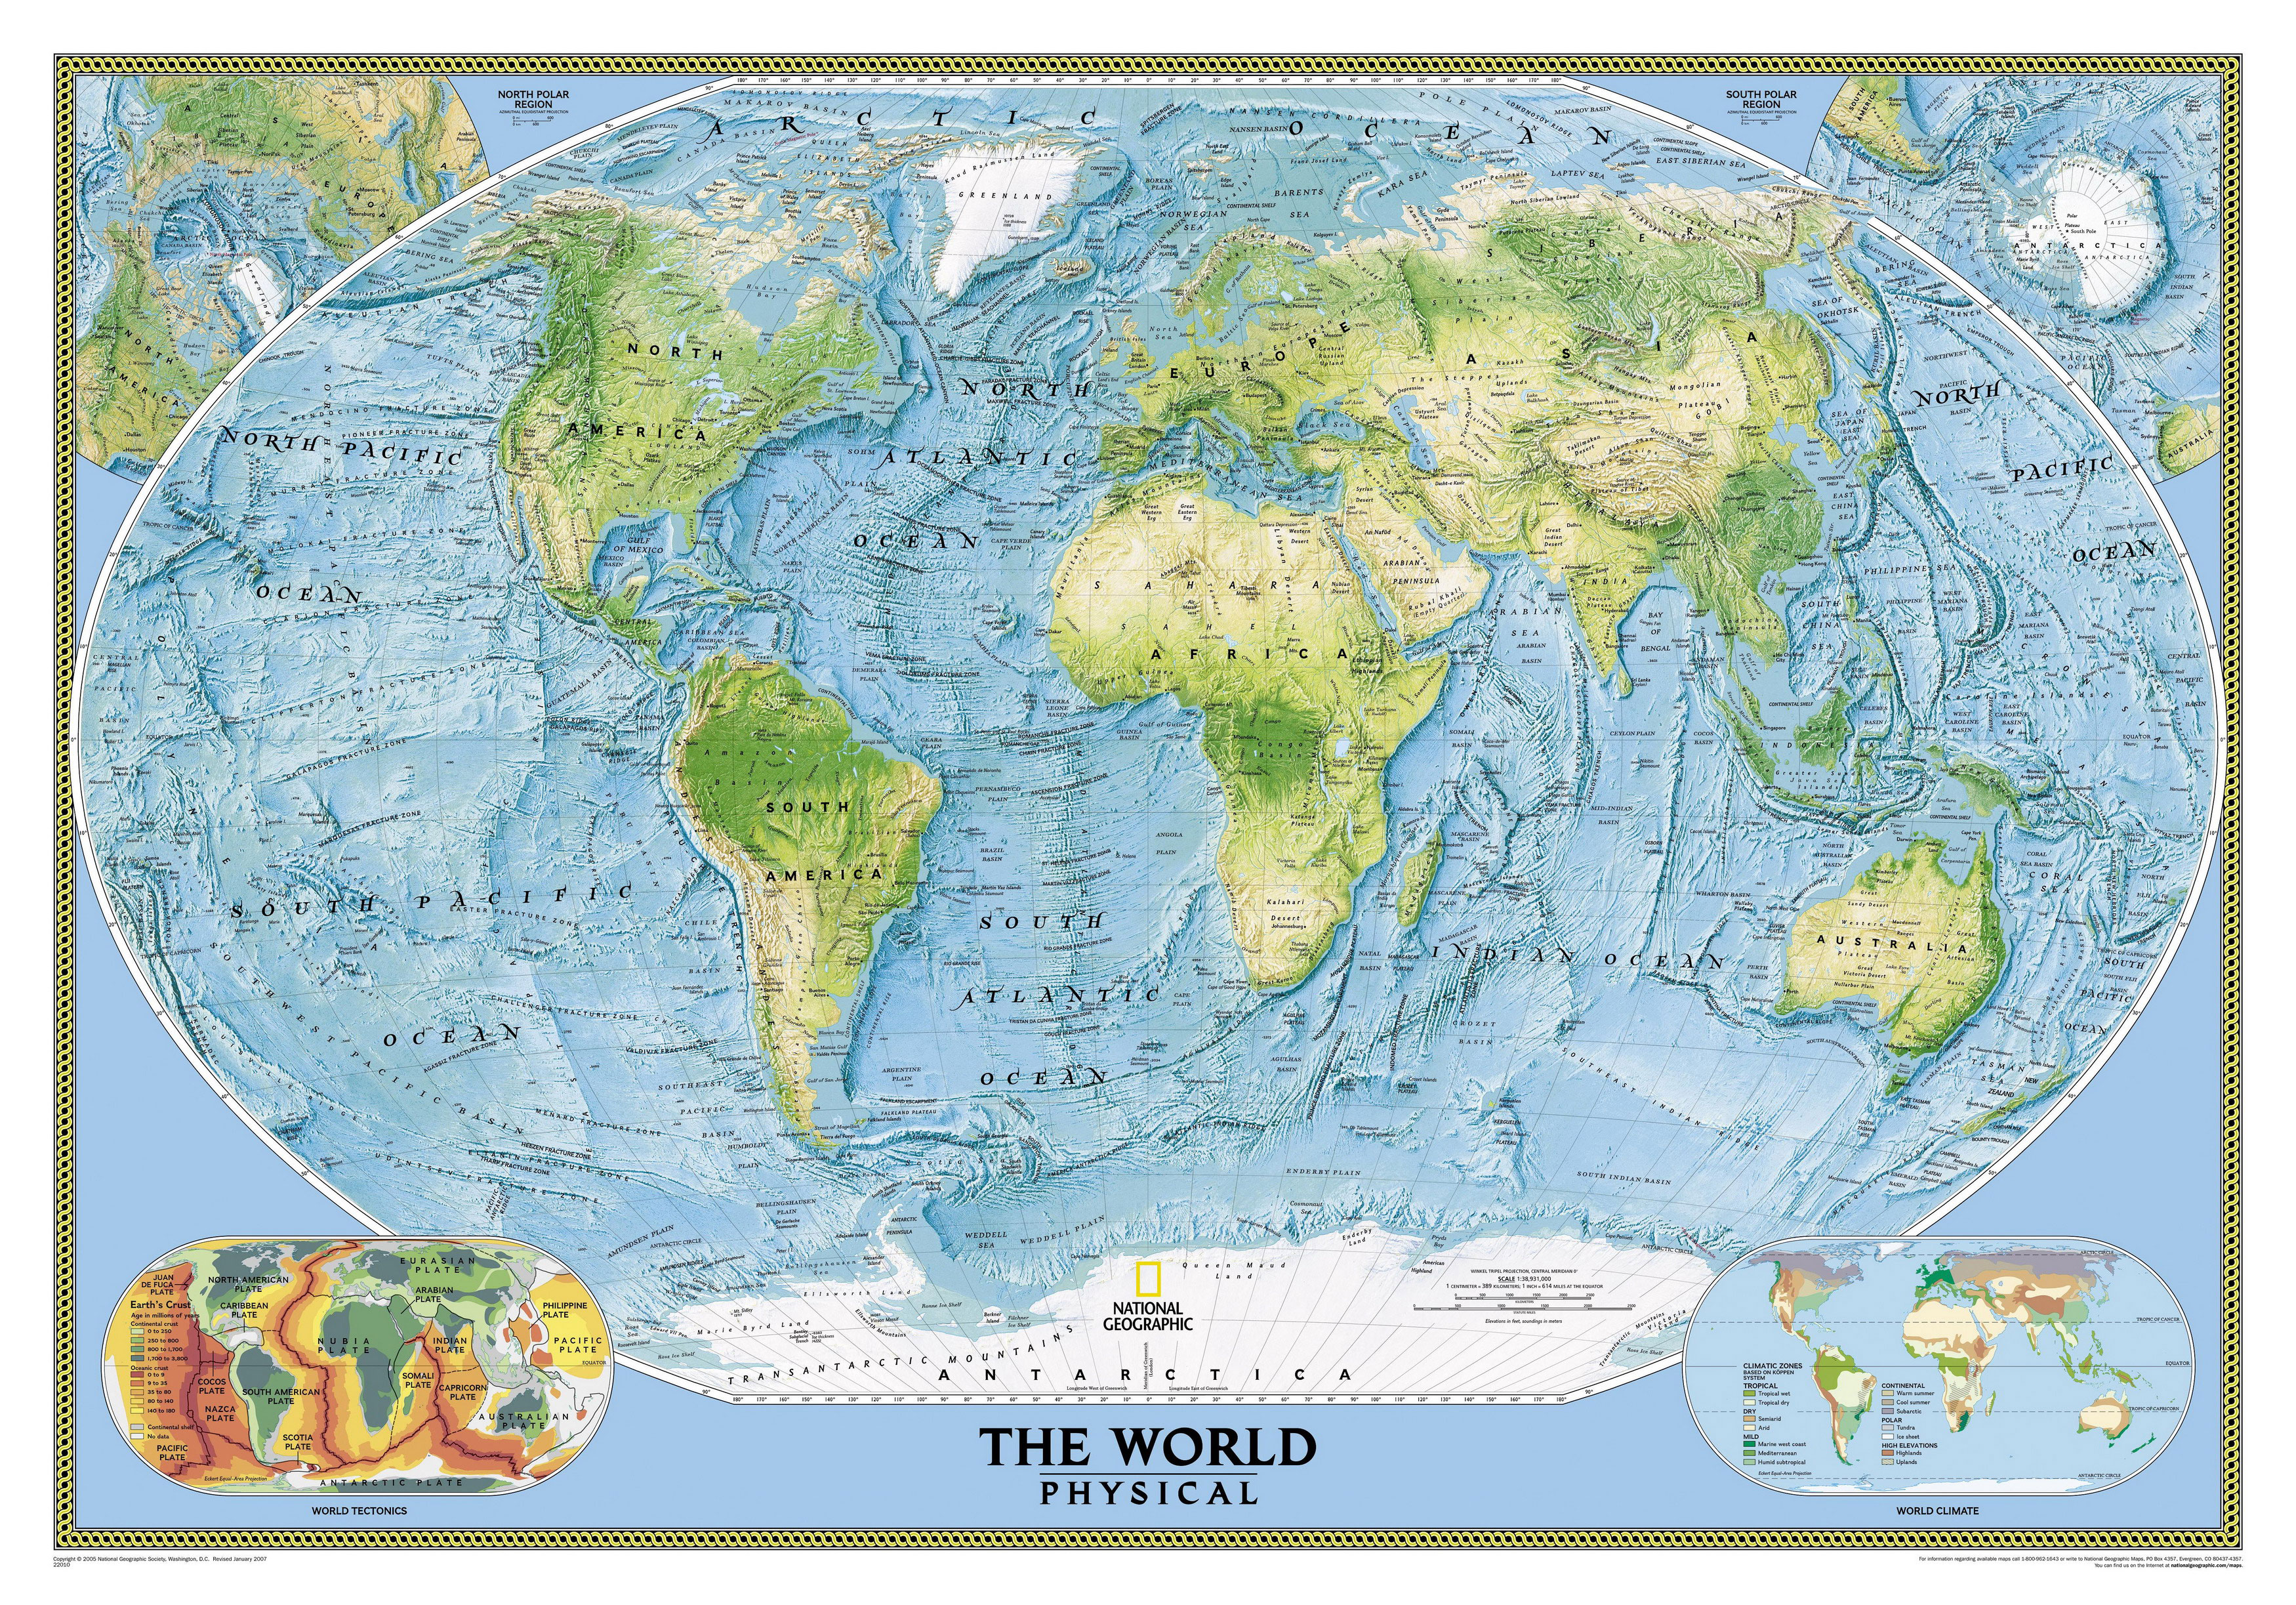 Phisical map of the Earth